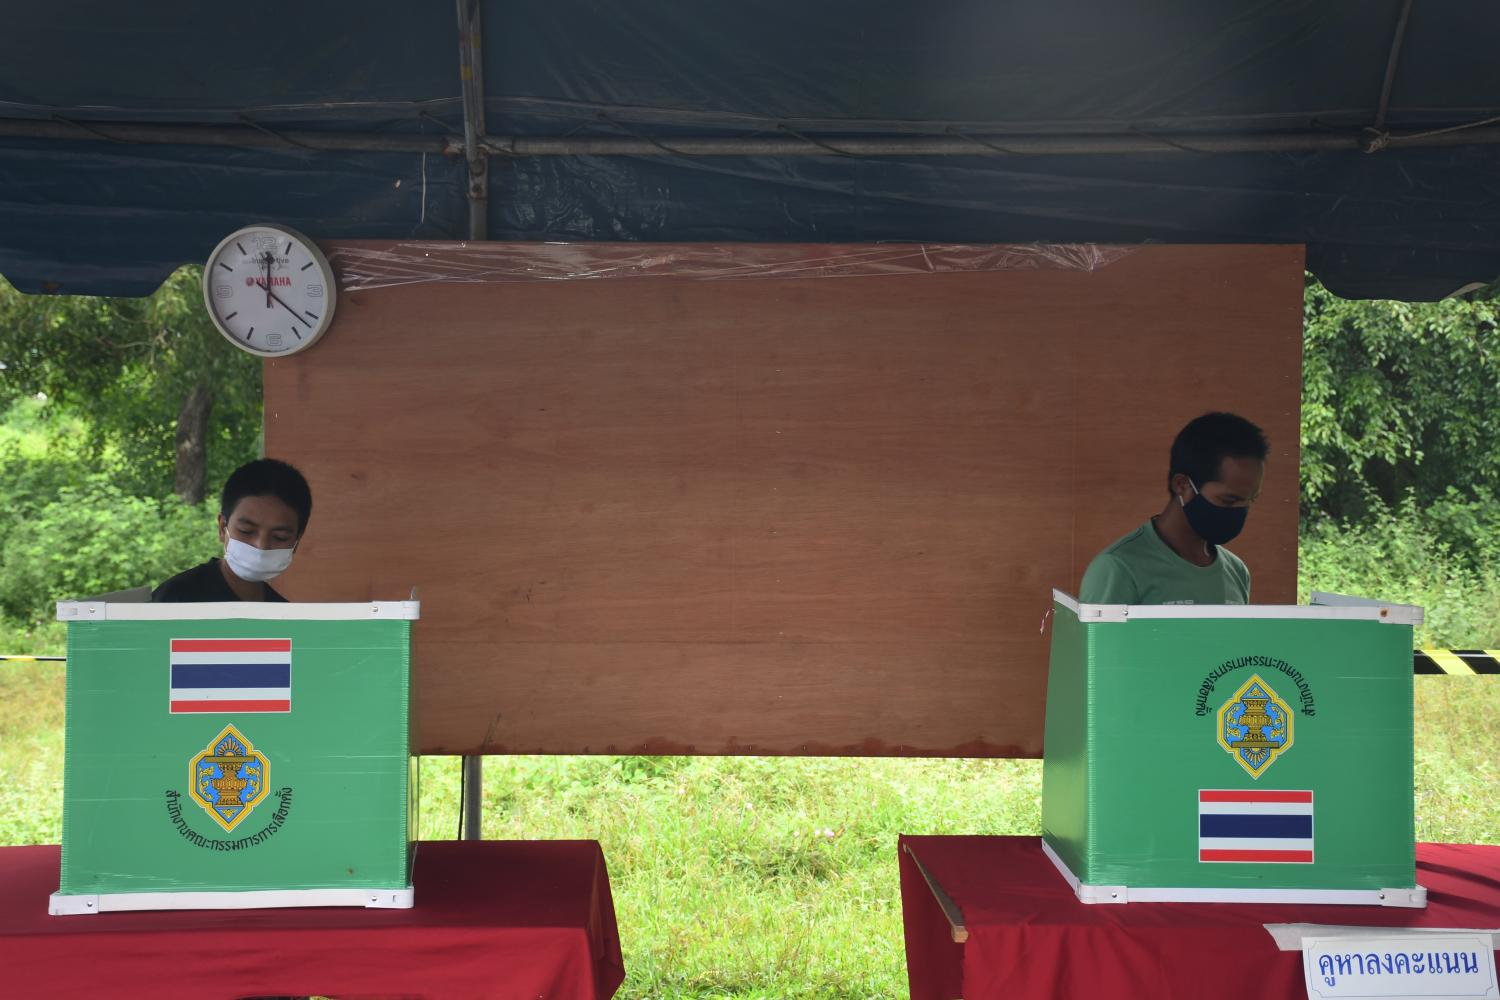 Voters cast their ballots in the Provincial Administration Organisation election in Songkhla on Sunday.(Photo by Nutthawat Wicheanbut)